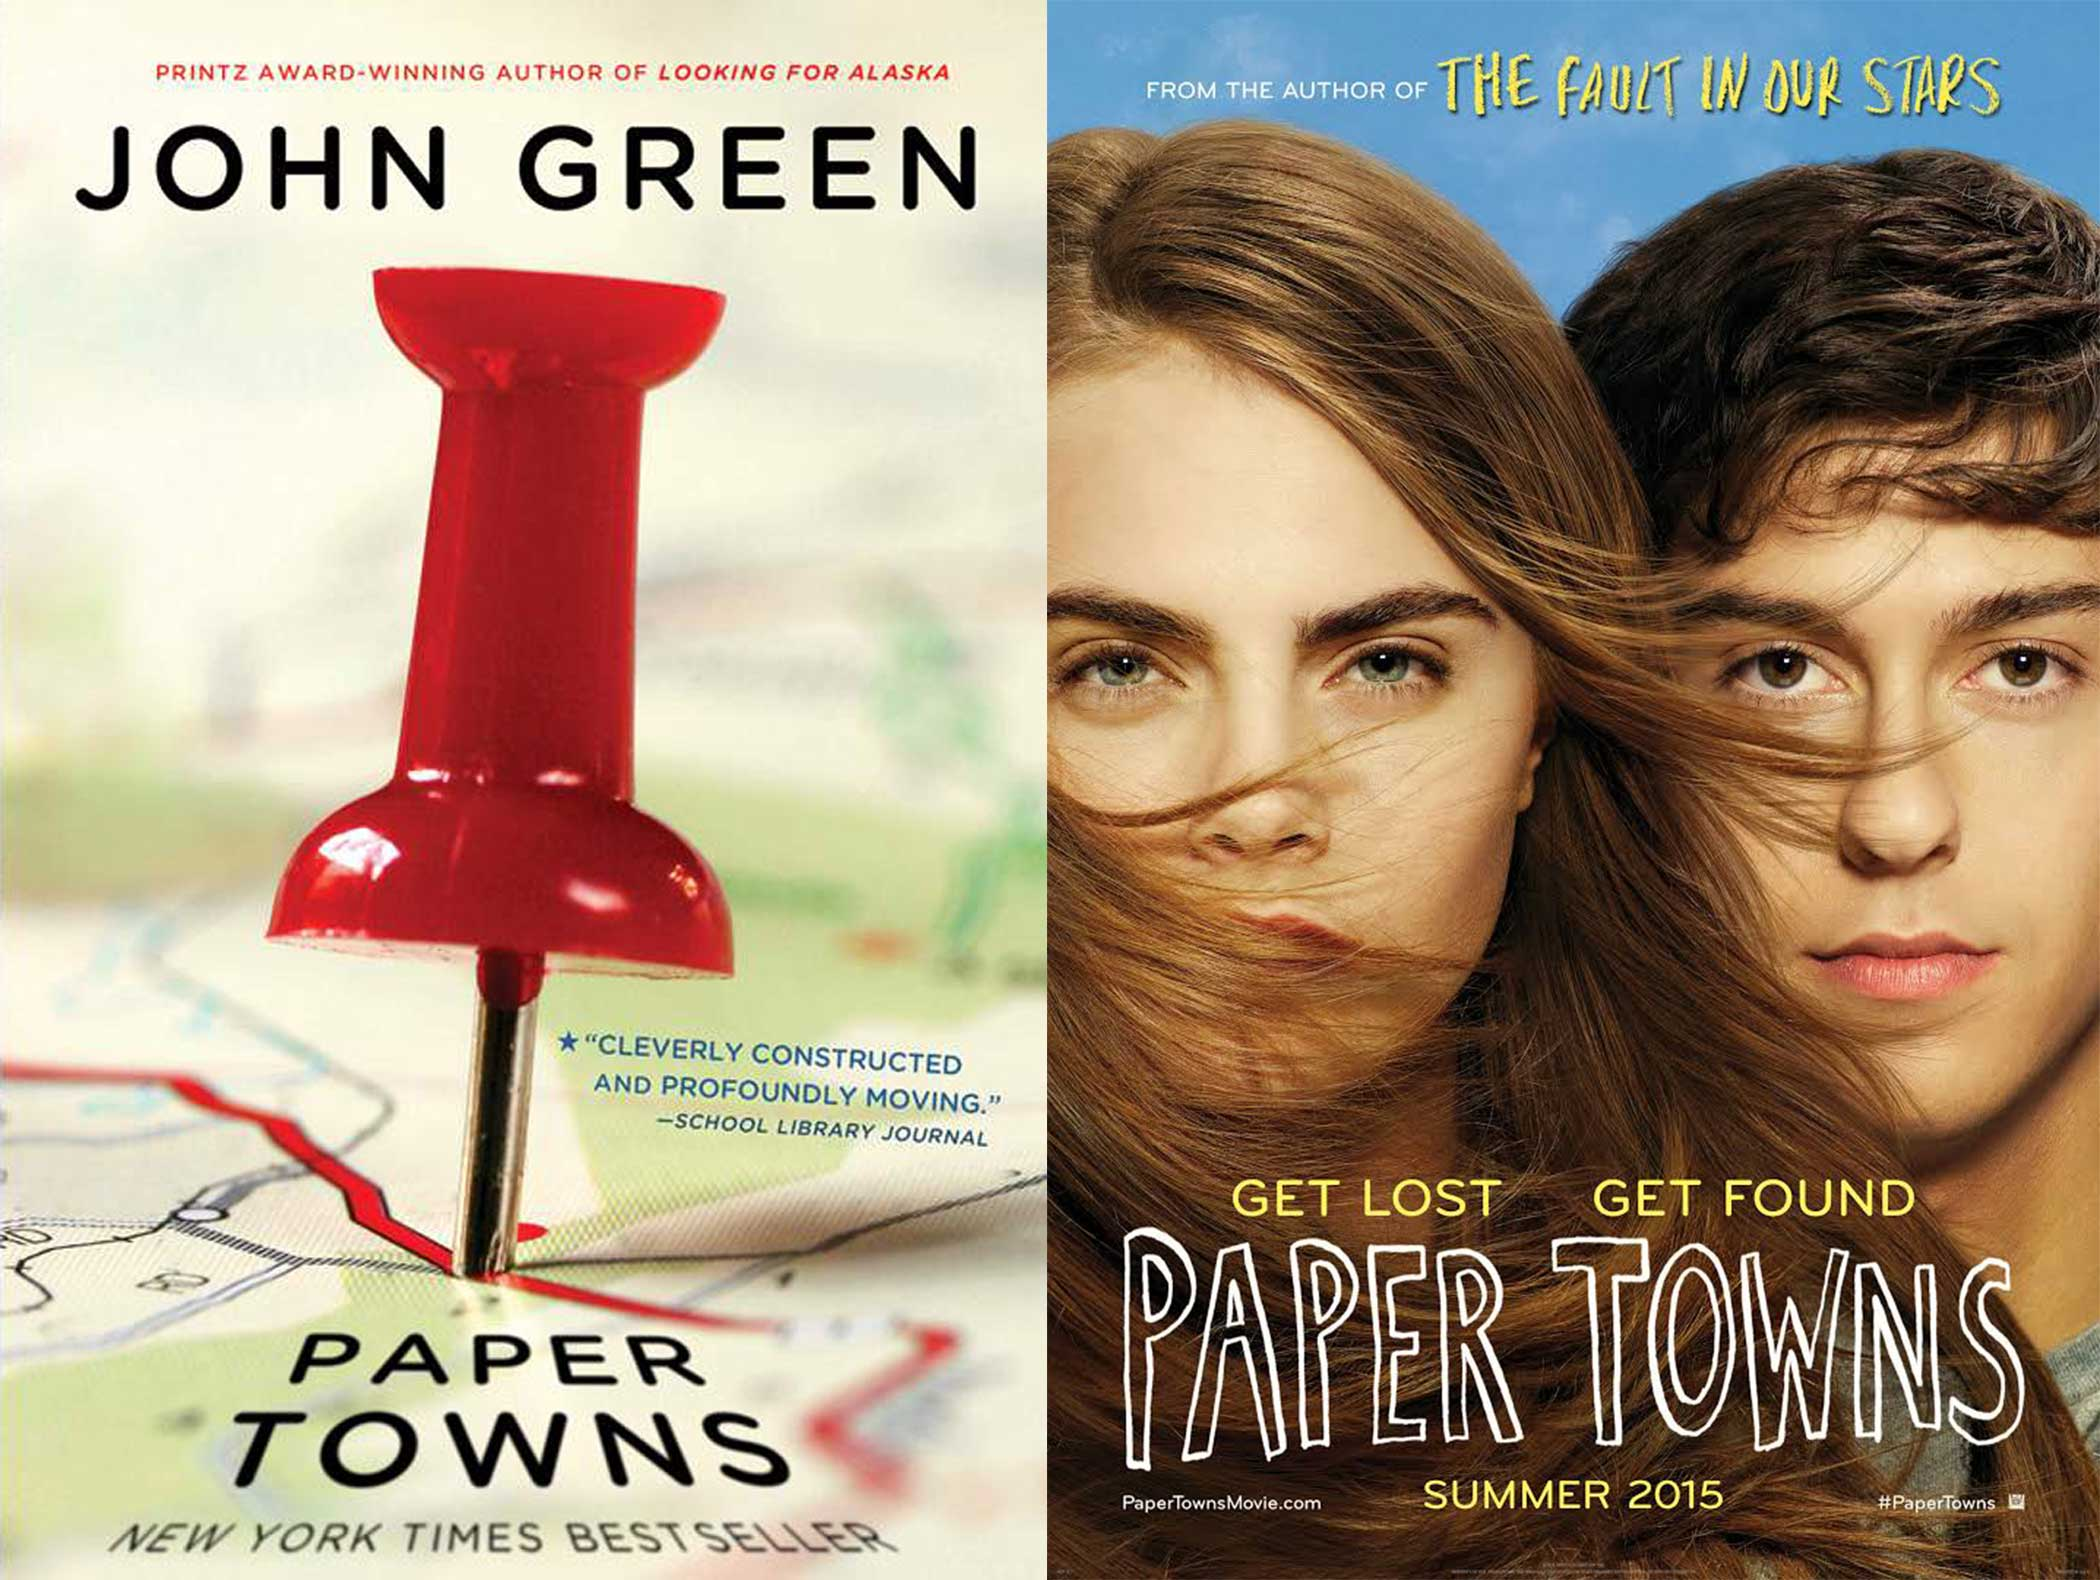 Side-by-side book cover and movie poster of YA novel Paper Towns. Book cover is a red push pin through a road map. Movie poster is two main characters facing the camera.